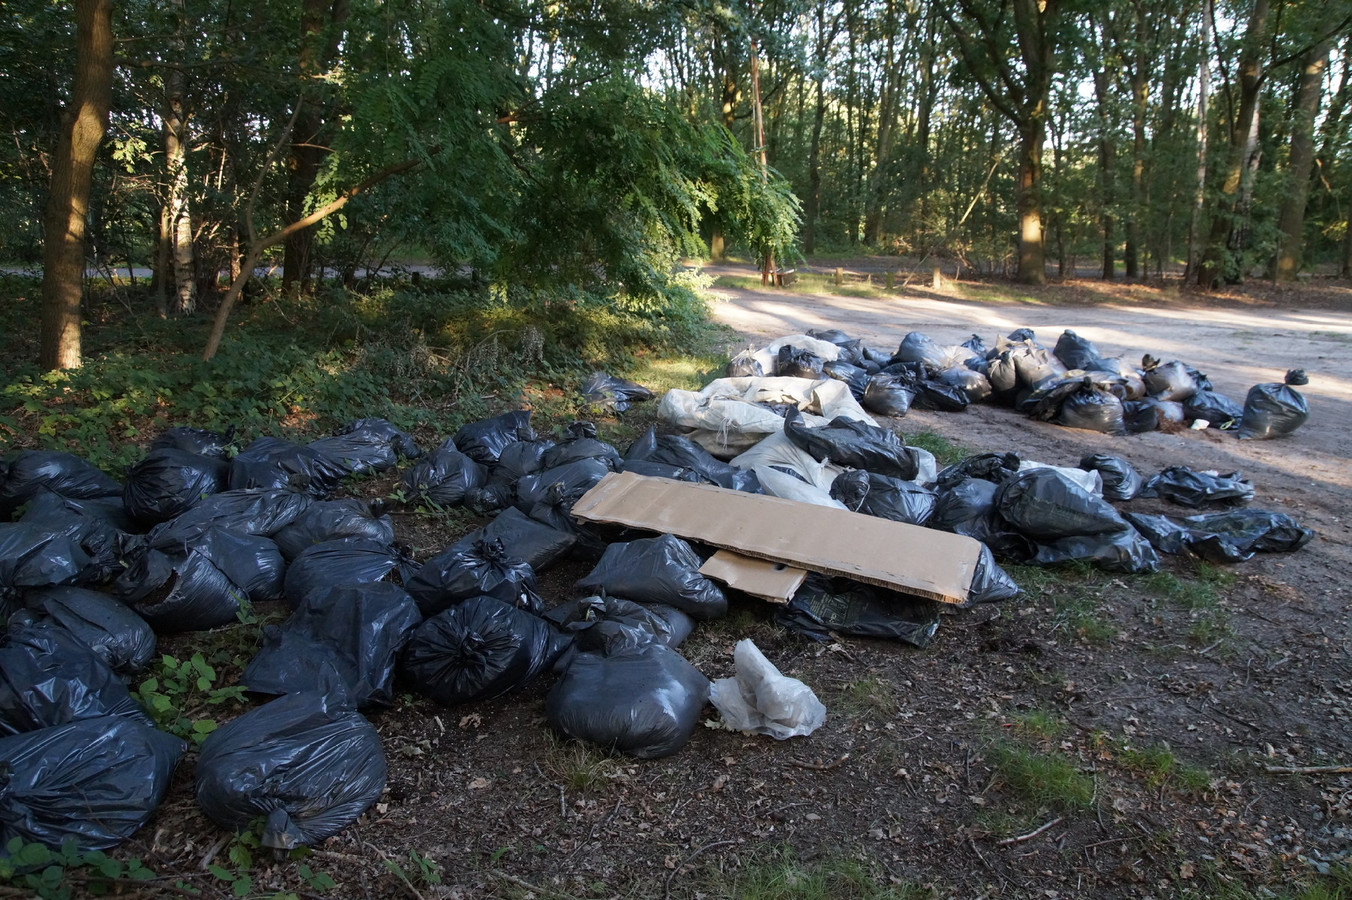 Gedumpt drugsafval.